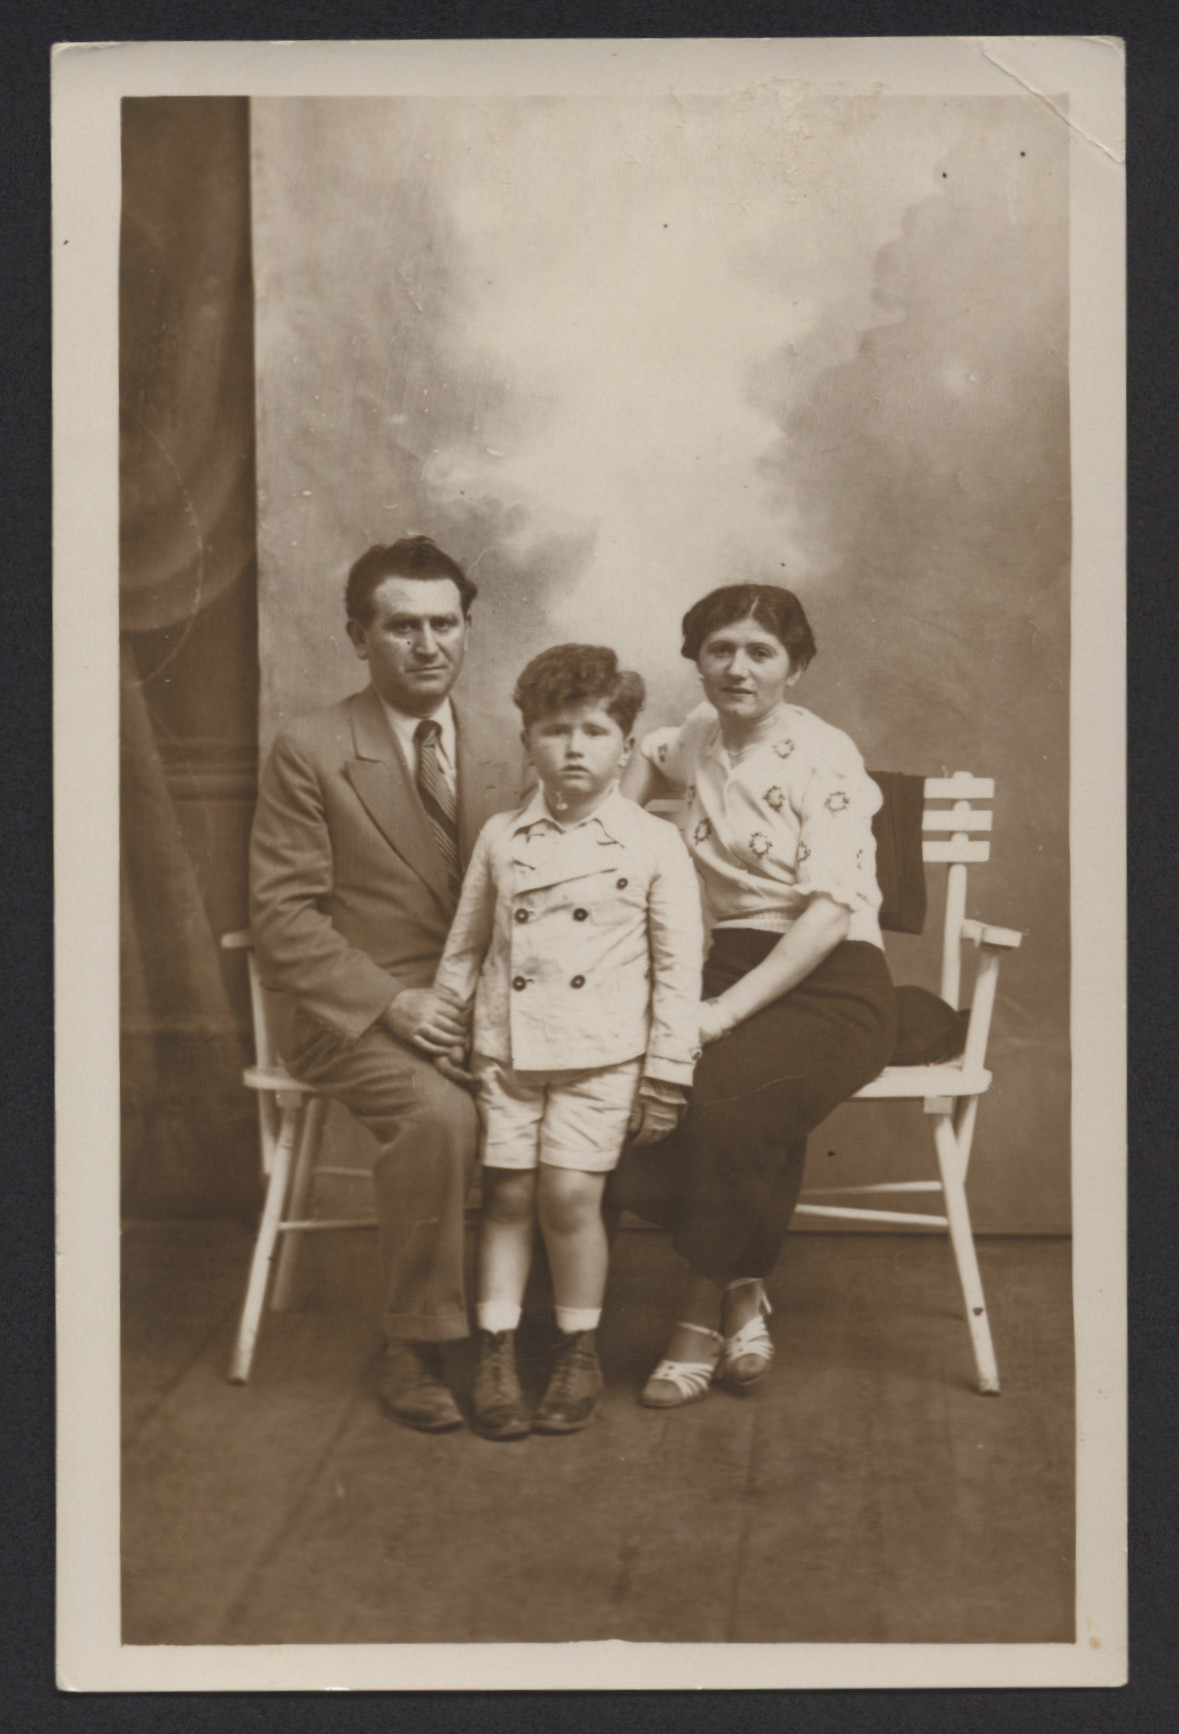 Studio portrait of Erwin Tepper and his parents, Juda and Schifra Tepper.